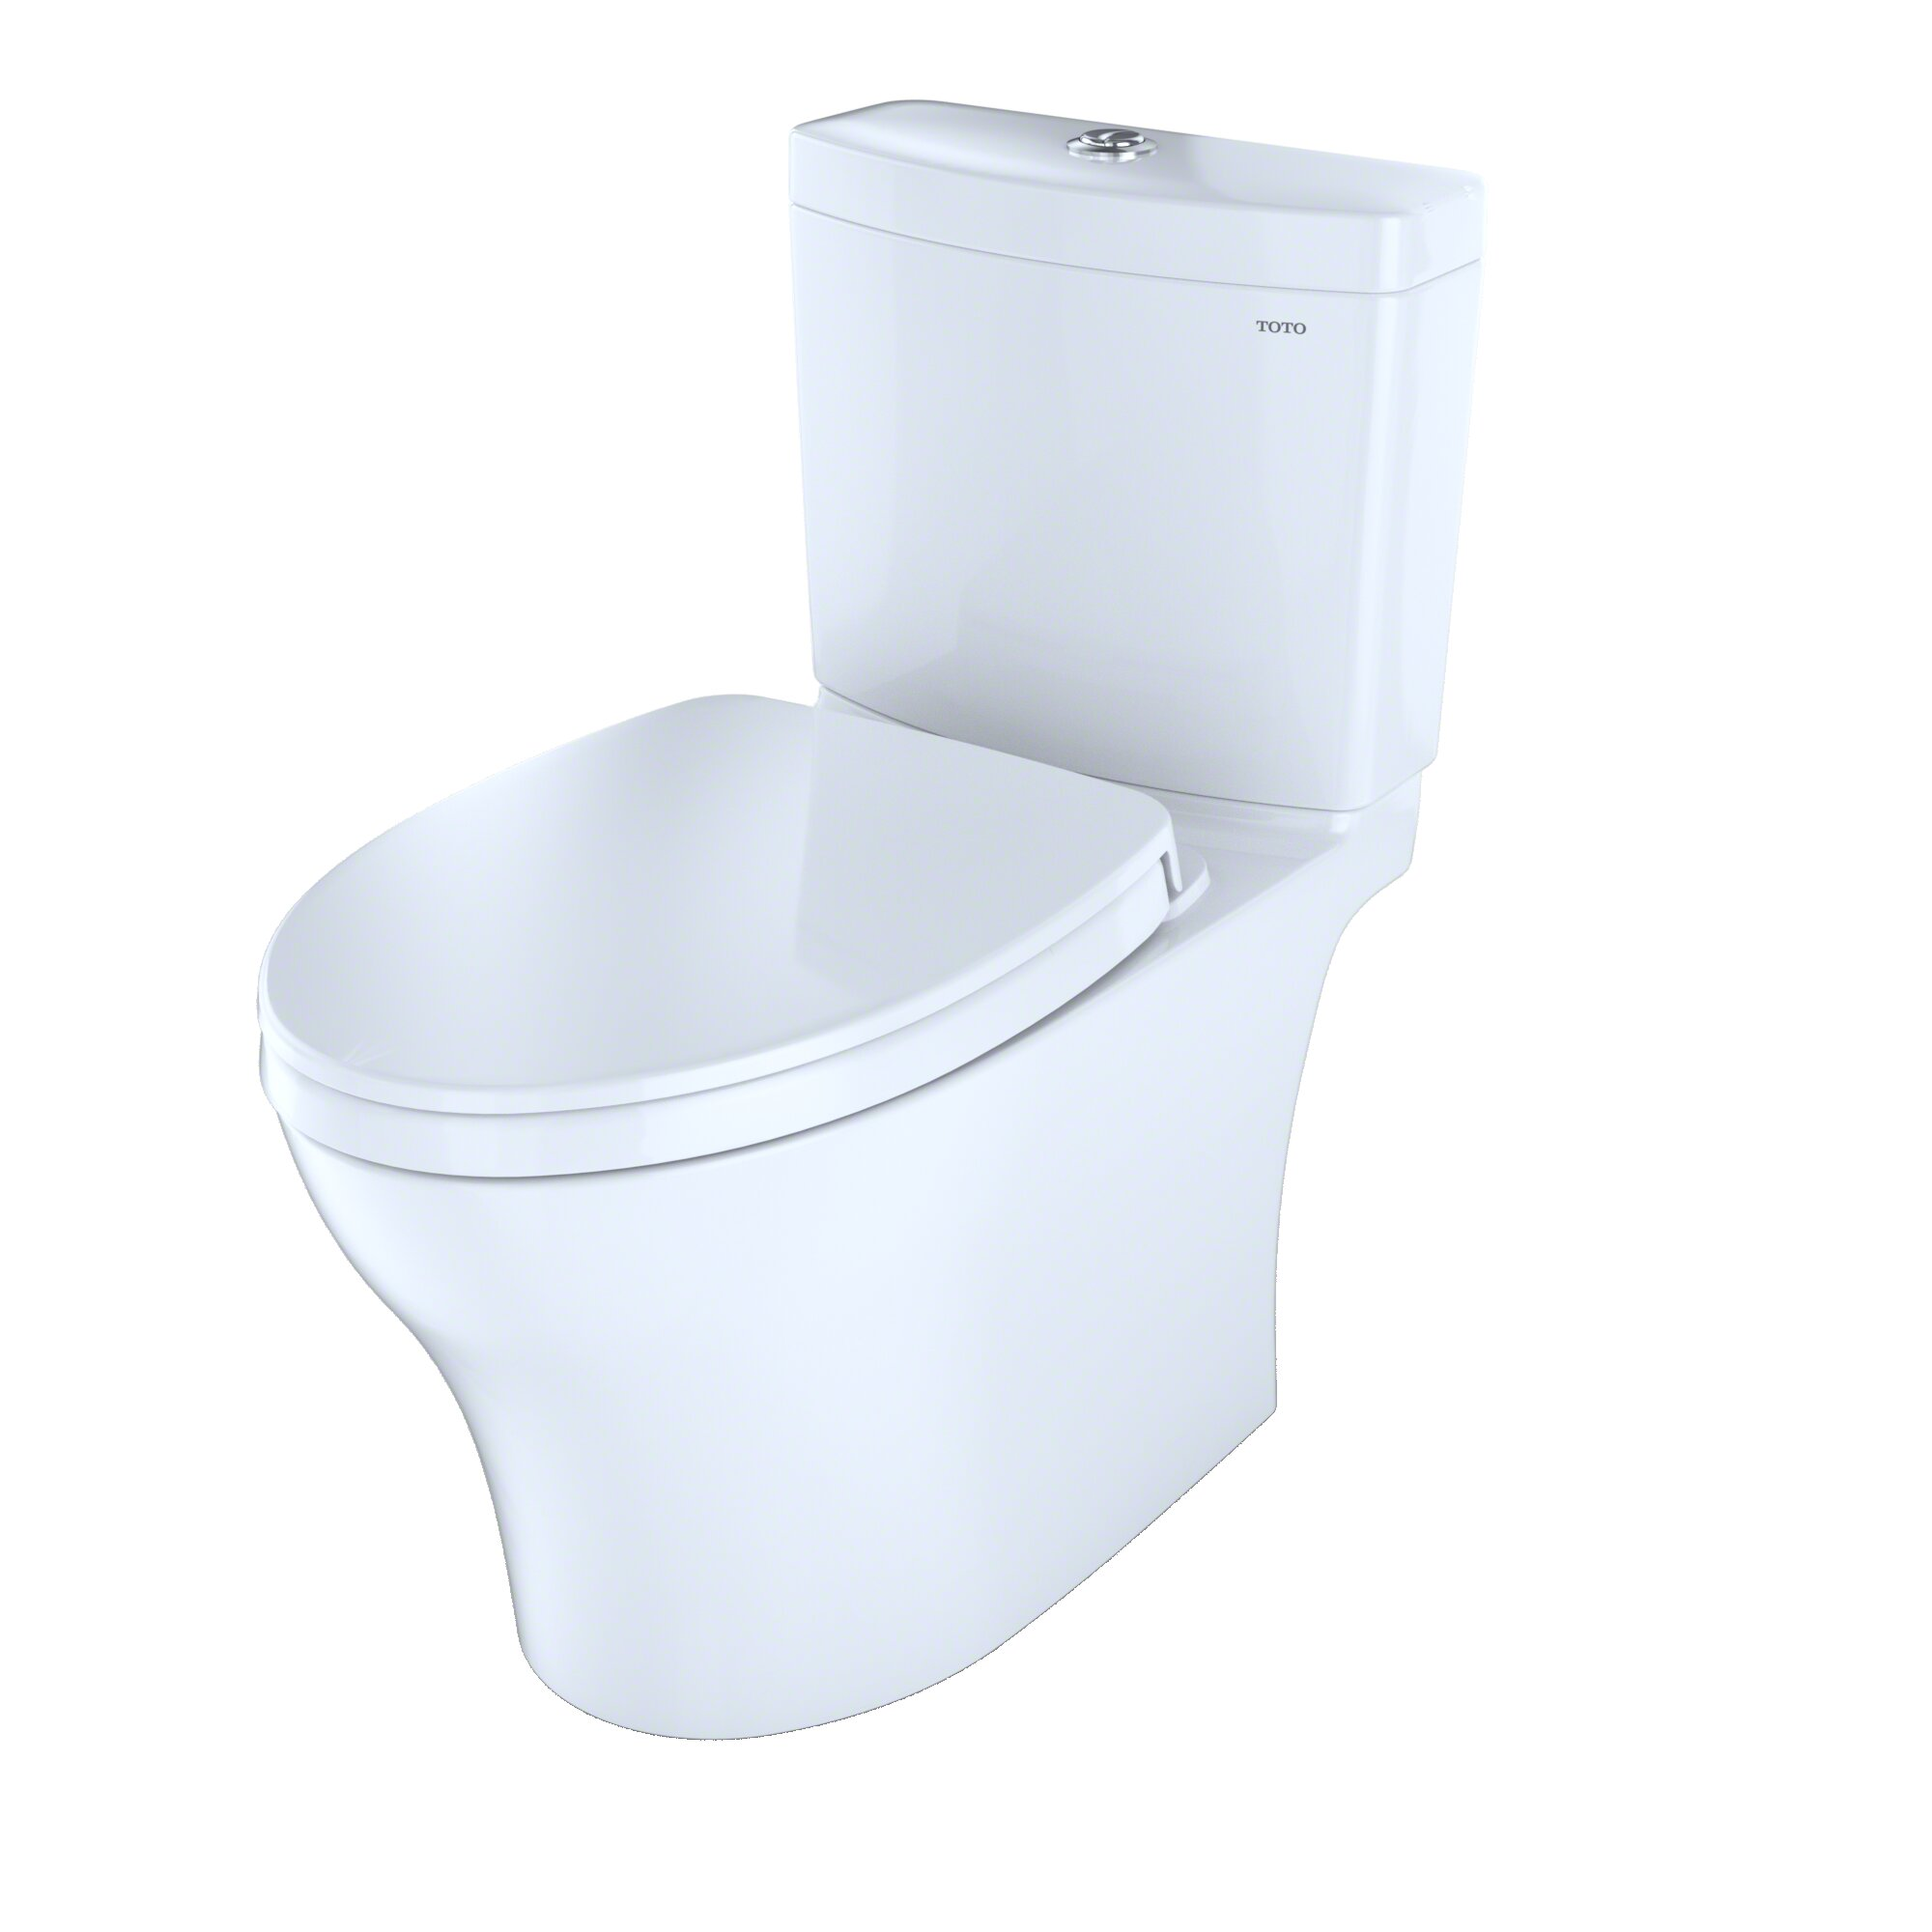 Toto Aquia IV Dual Flush Elongated Two-Piece Toilet with CeFiONtect ...